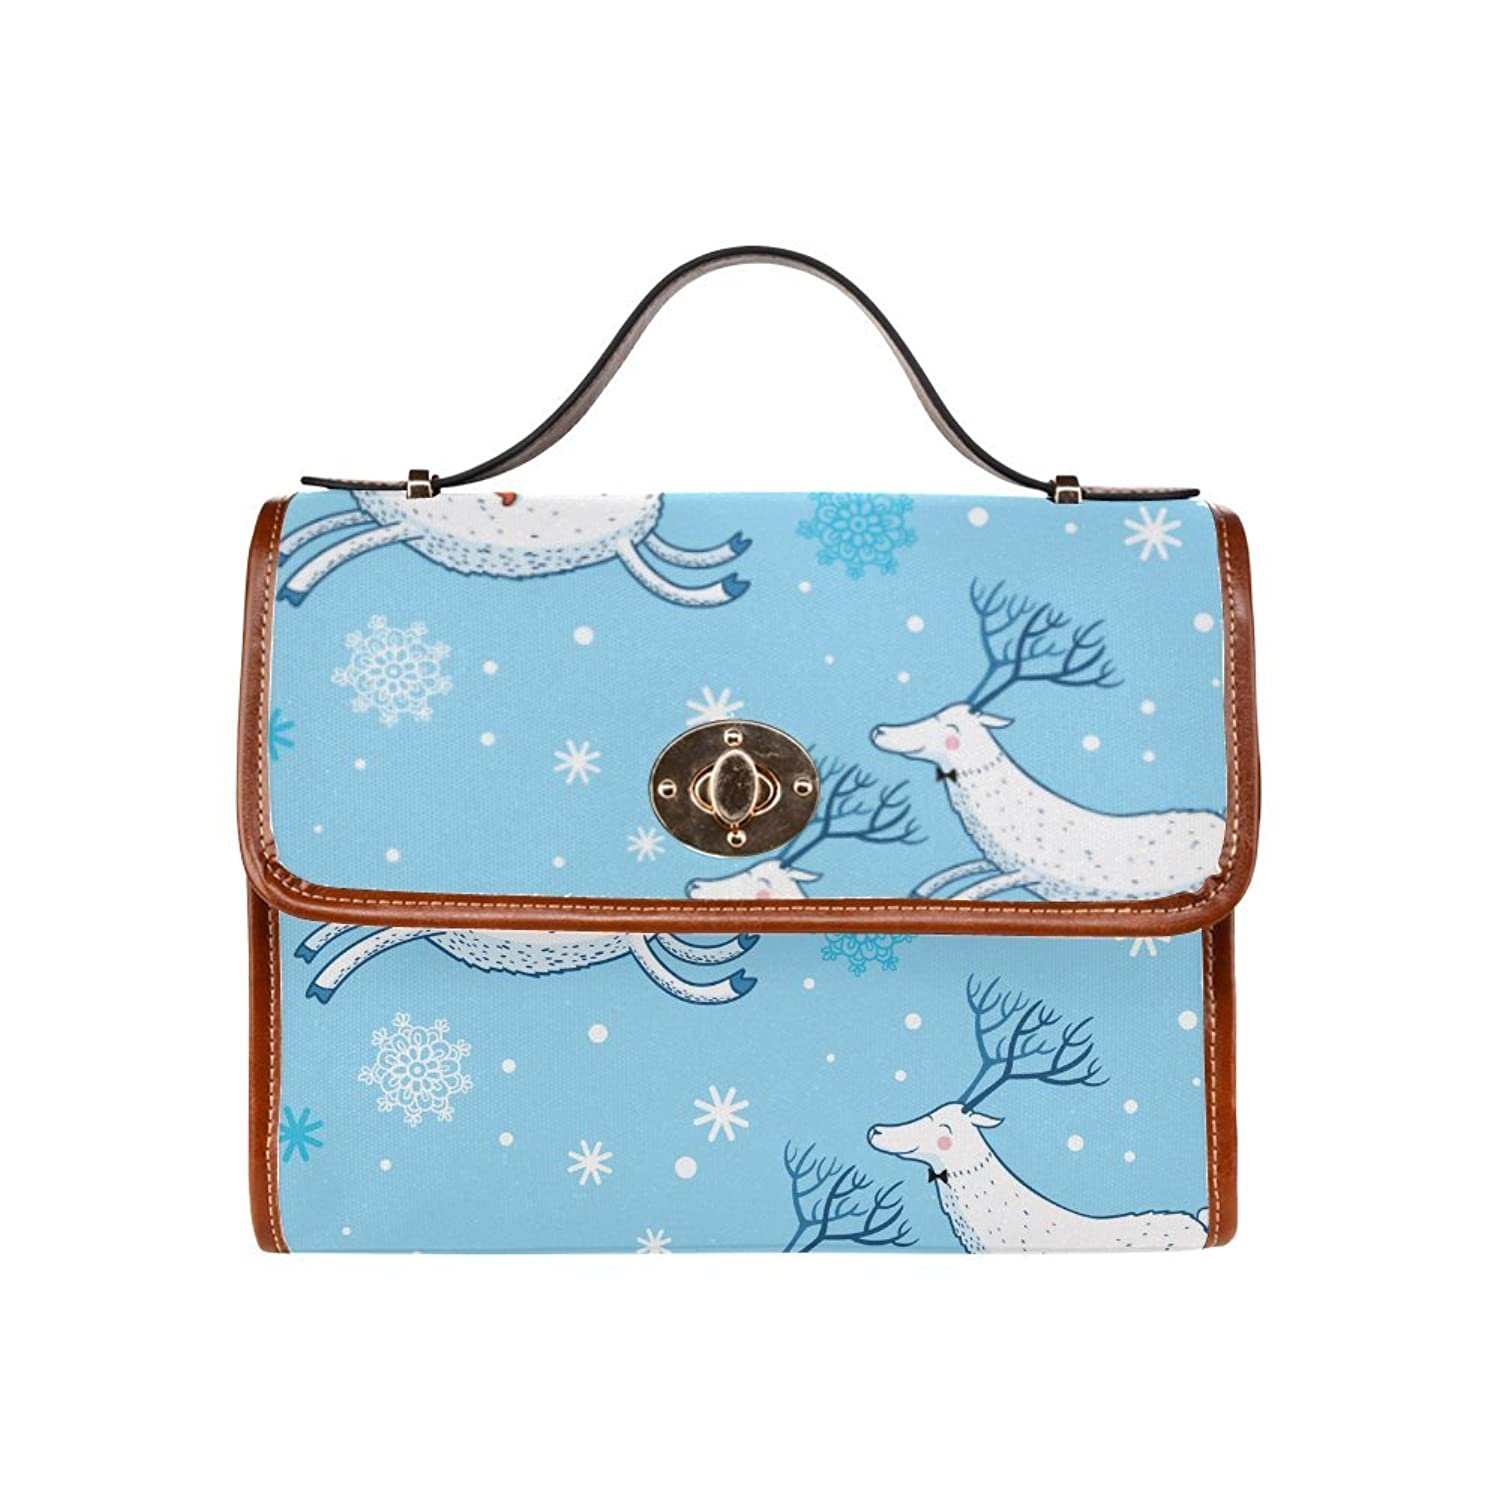 Christmas Reindeer Waterproof Canvas Tote Crossbody Bag Shoulder Messenger Bags